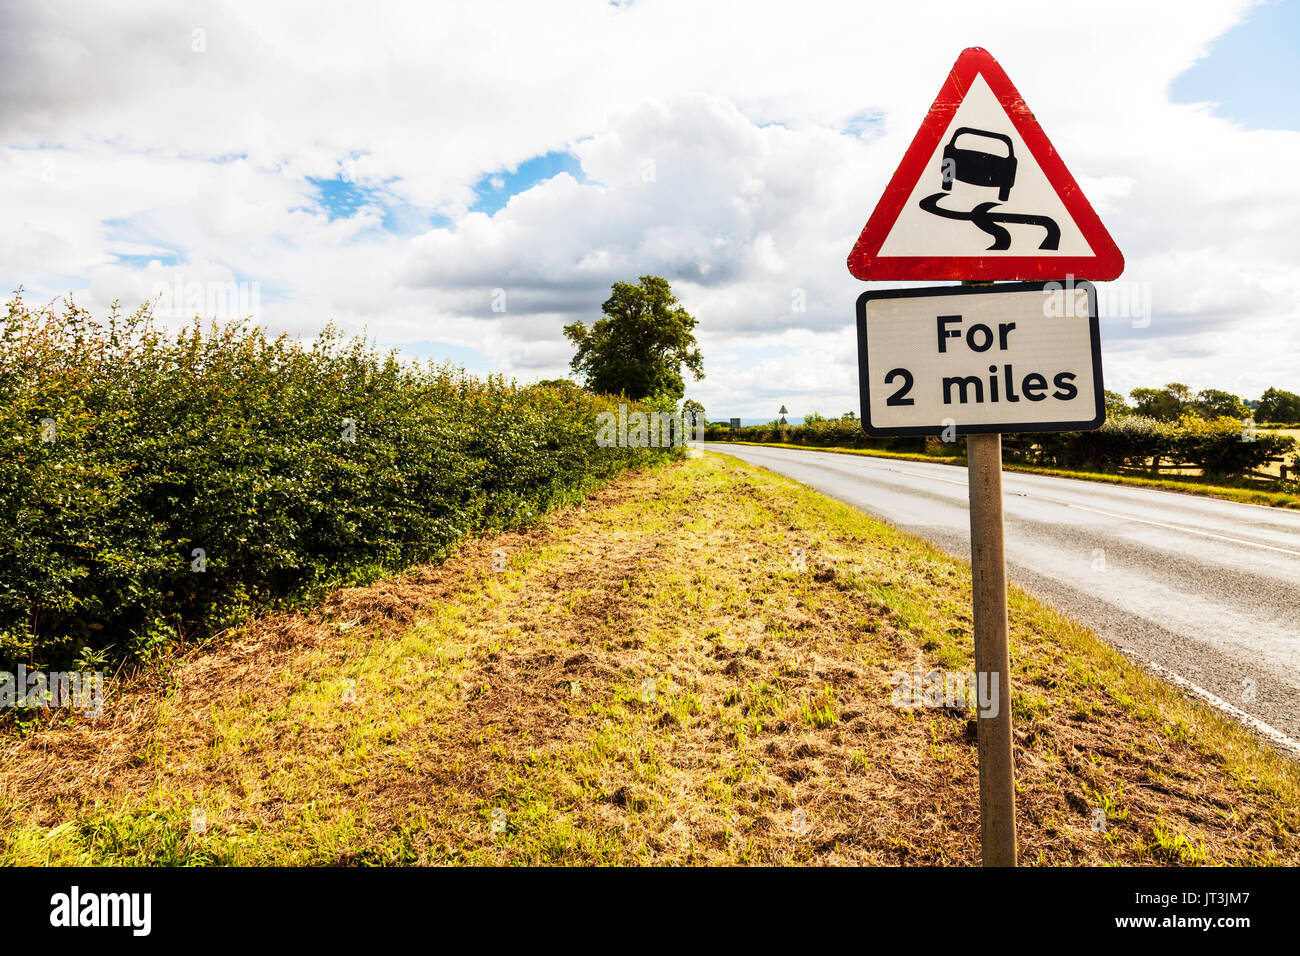 Slippery road, Slippery road UK road sign, for 2 miles, Slippery road for 2 miles, road sign, warning, danger, beware, Stock Photo